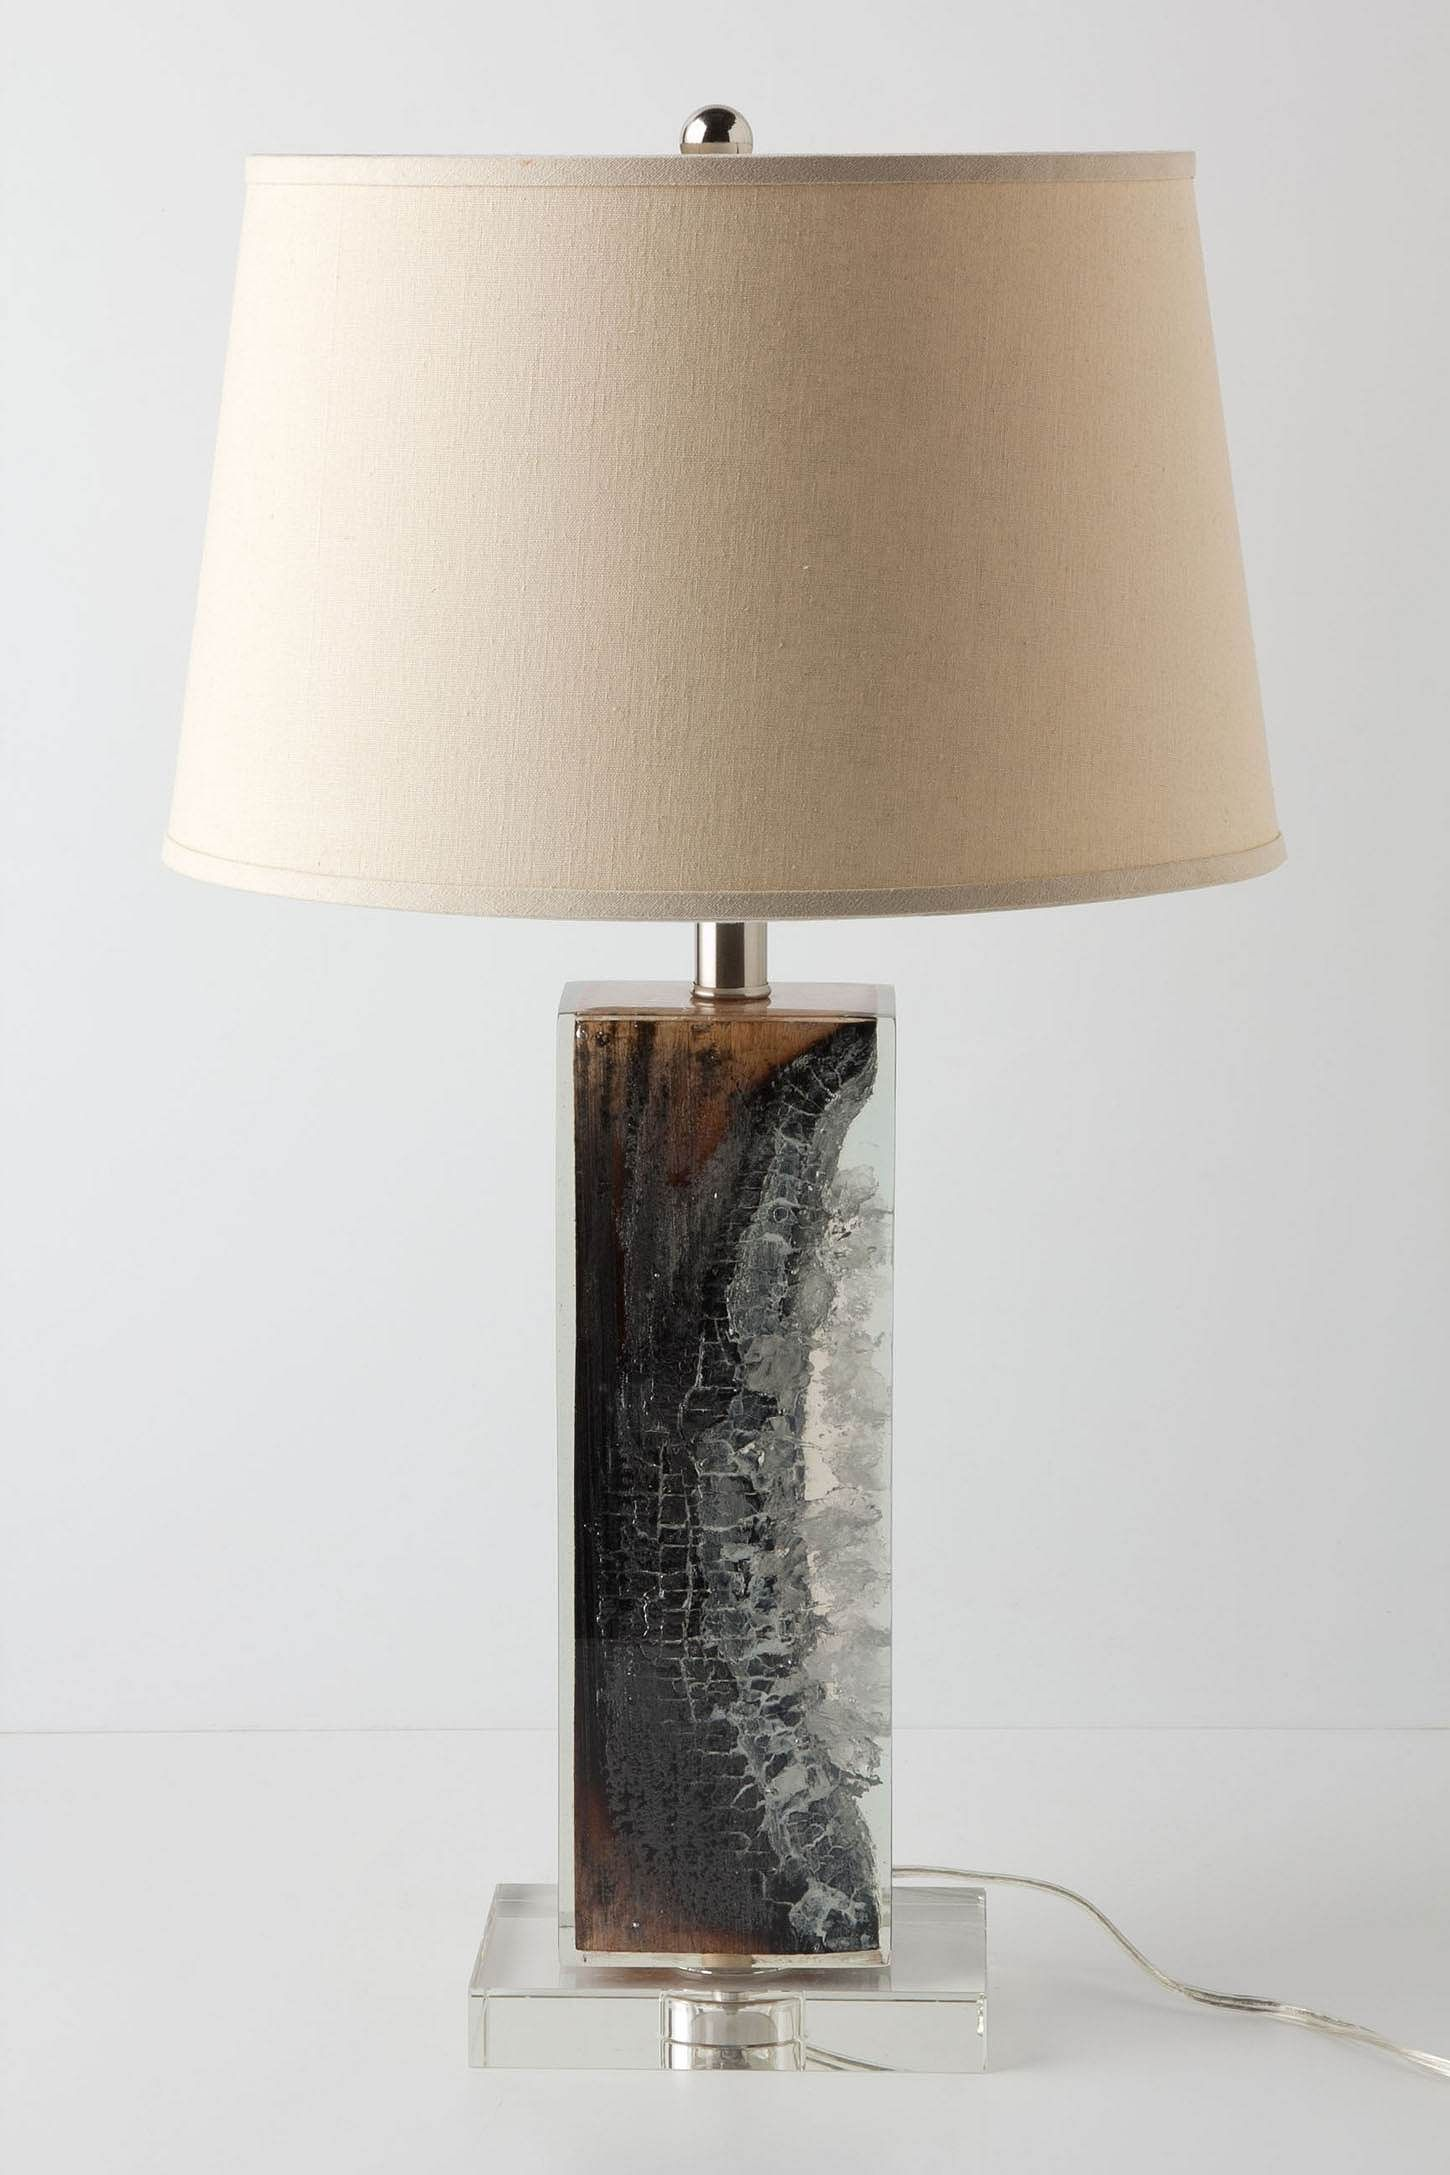 Scorched Timber Lamp Base | Lamp bases, Lamp, Table lamp